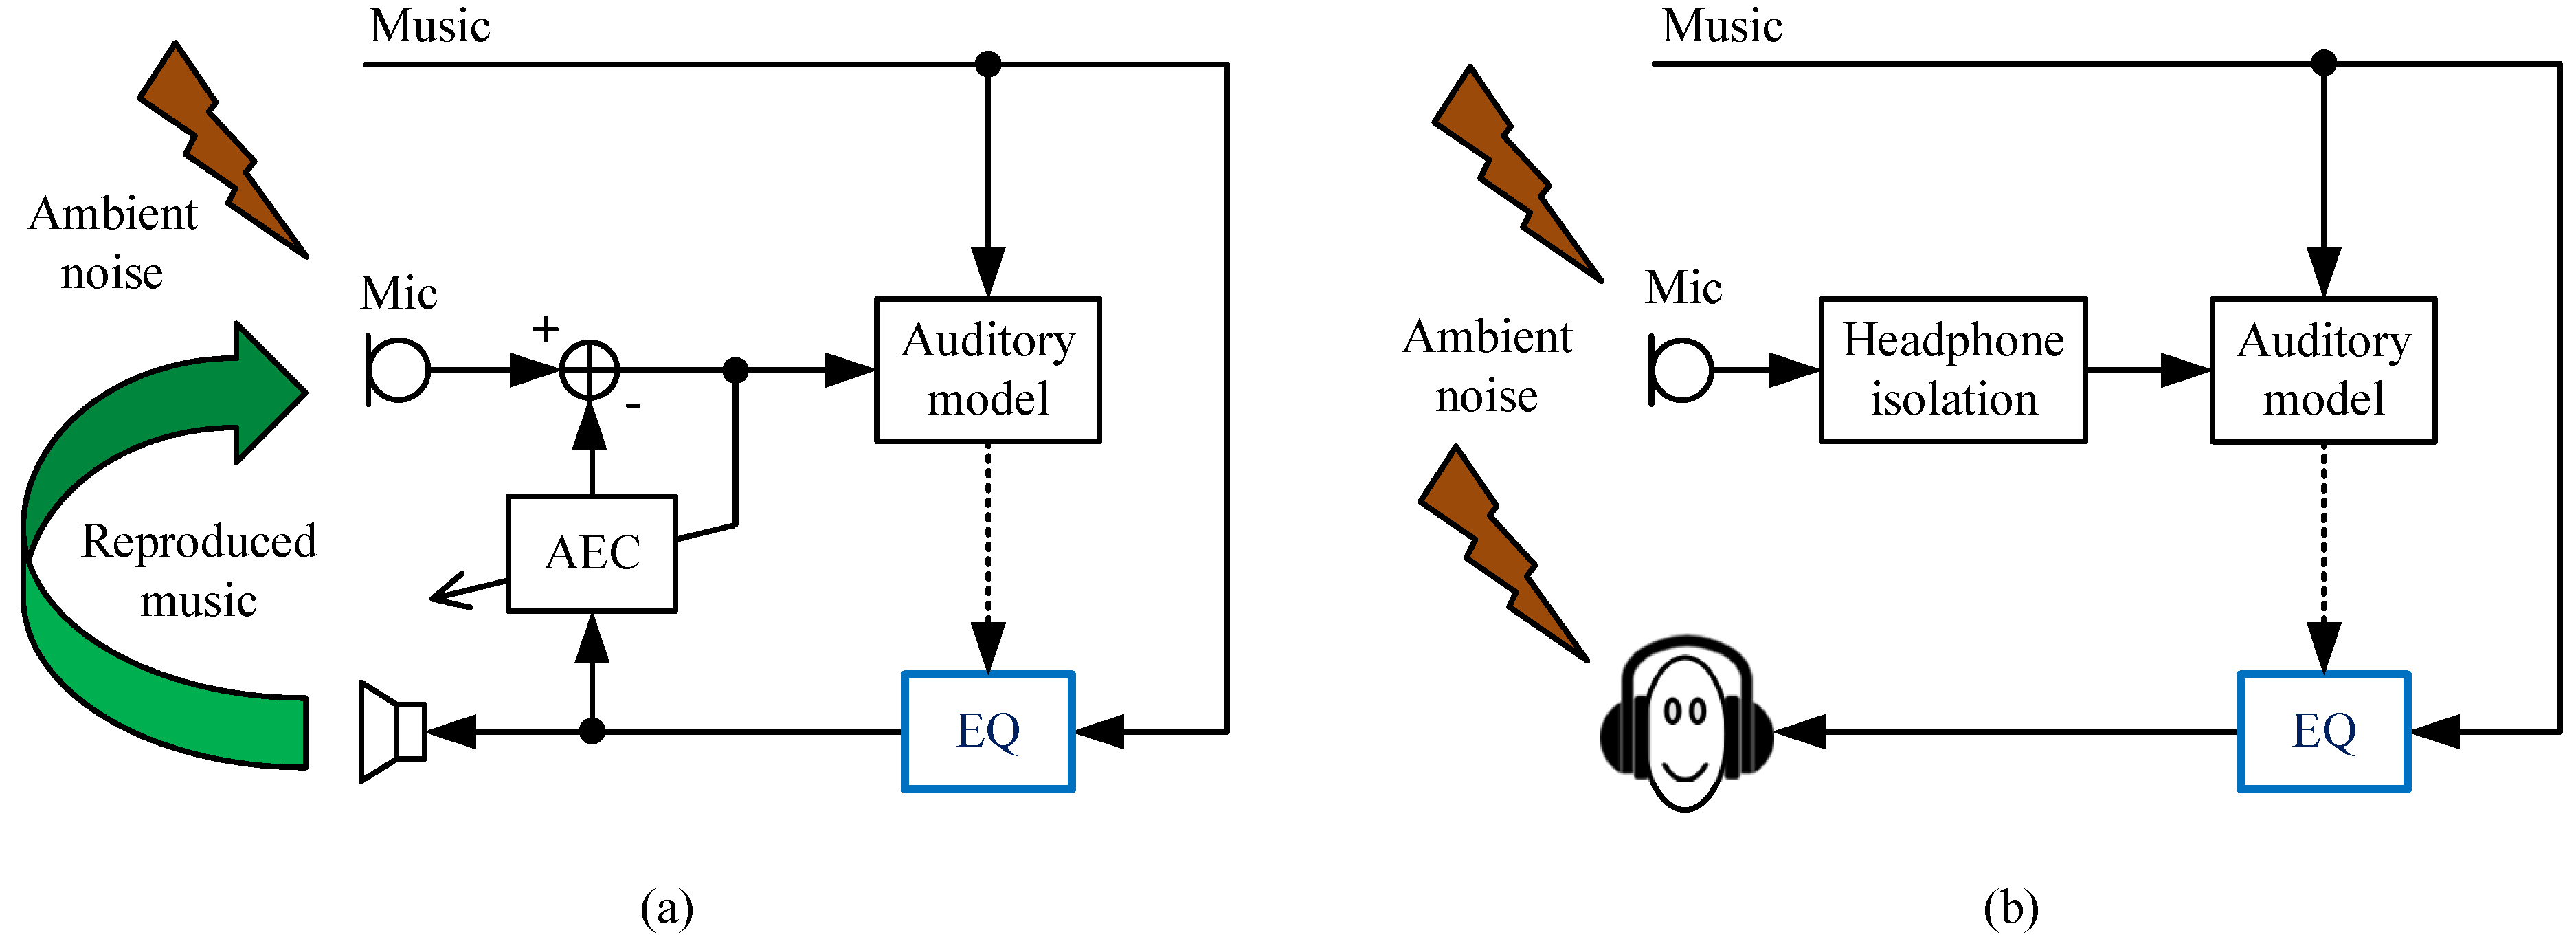 Applied Sciences Free Full Text All About Audio Equalization Based On The Classic Baxendall Tone Control Circuit This Provides A Solutions And Frontiers Html